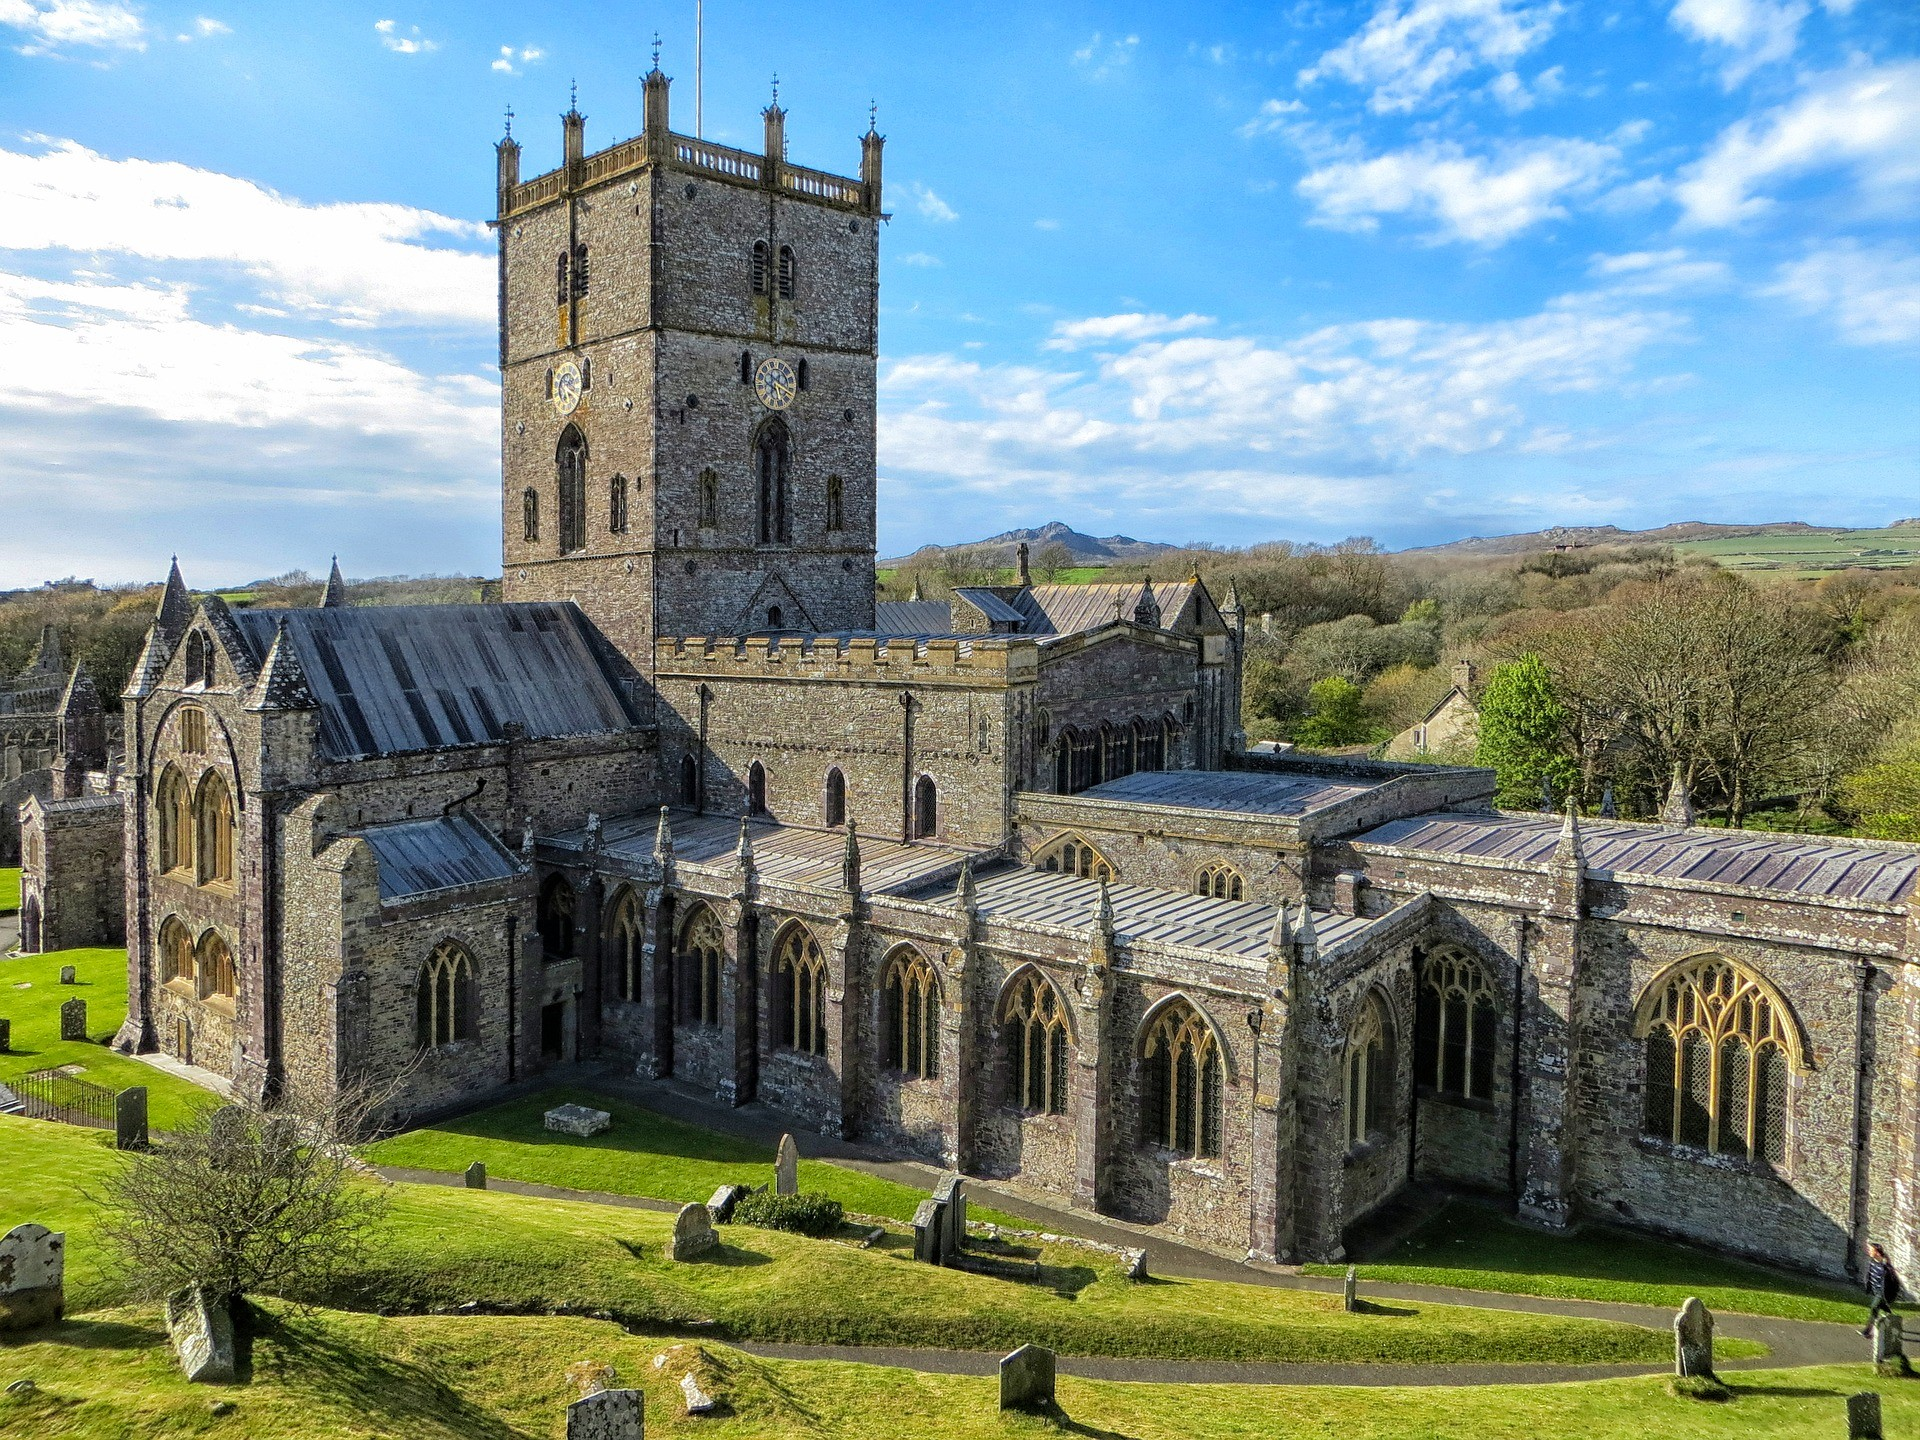 View of St. David's Cathedral in Pembrokeshire, Wales.